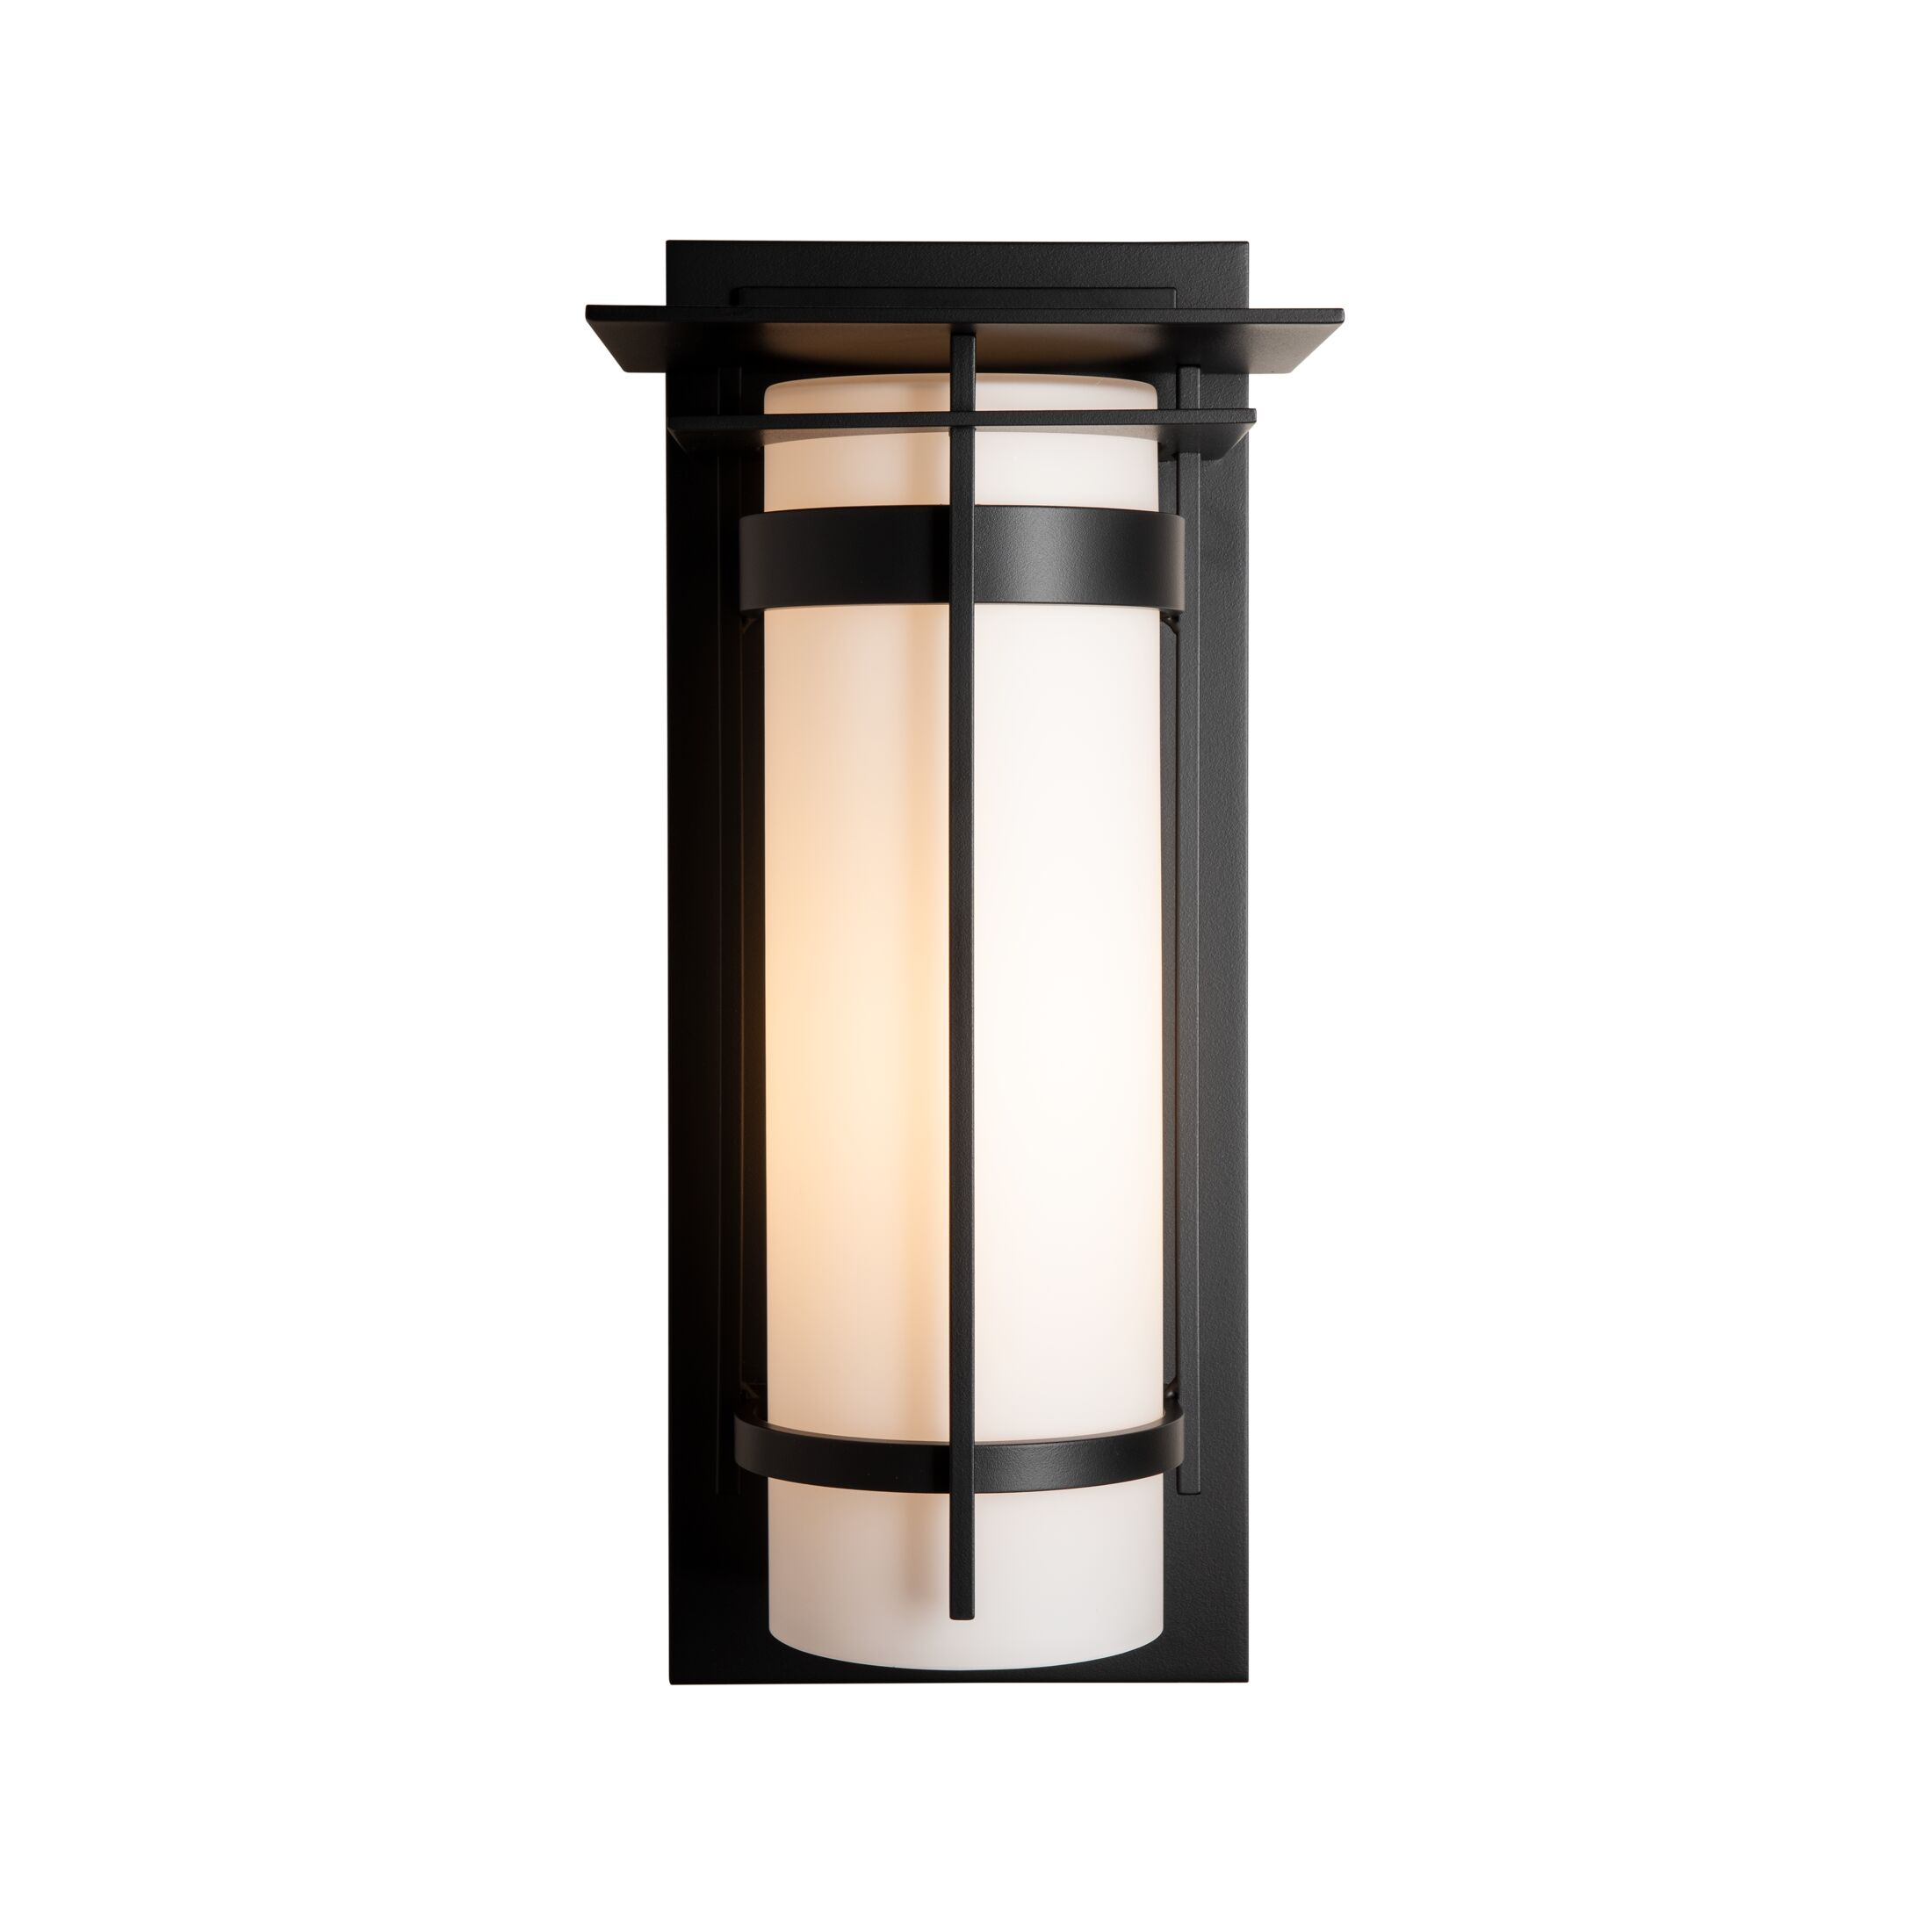 Thumbnail for Banded with Top Plate Large Outdoor Sconce